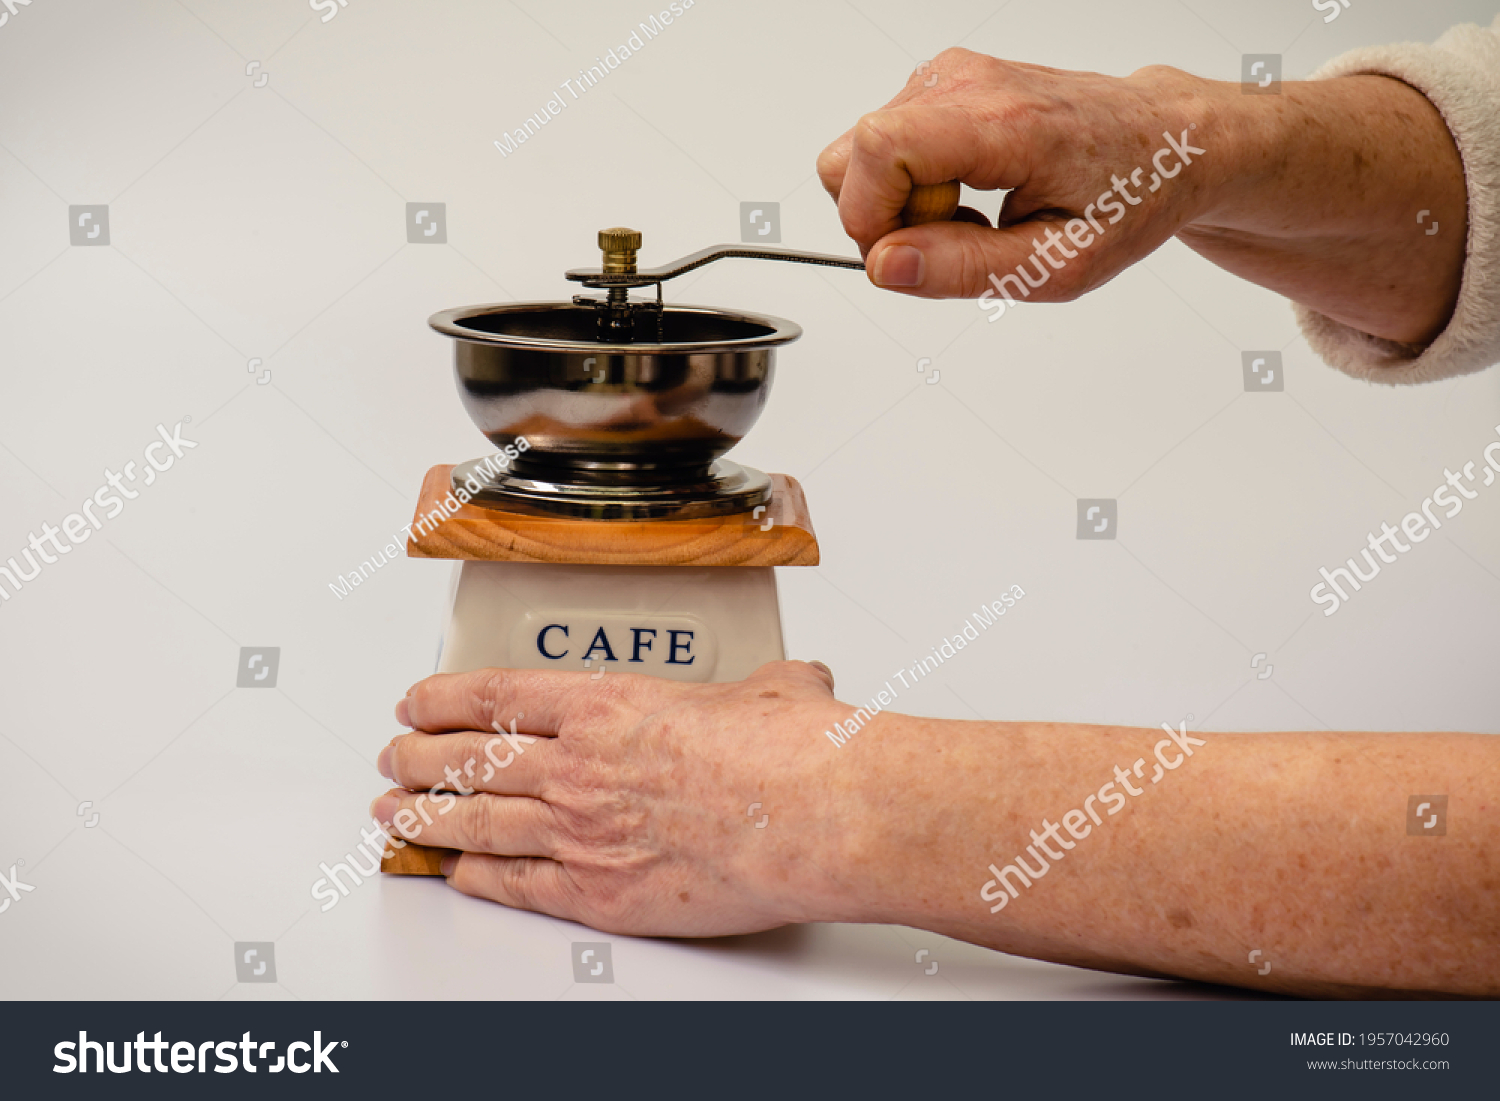 stock-photo-woman-s-hands-with-a-coffee-